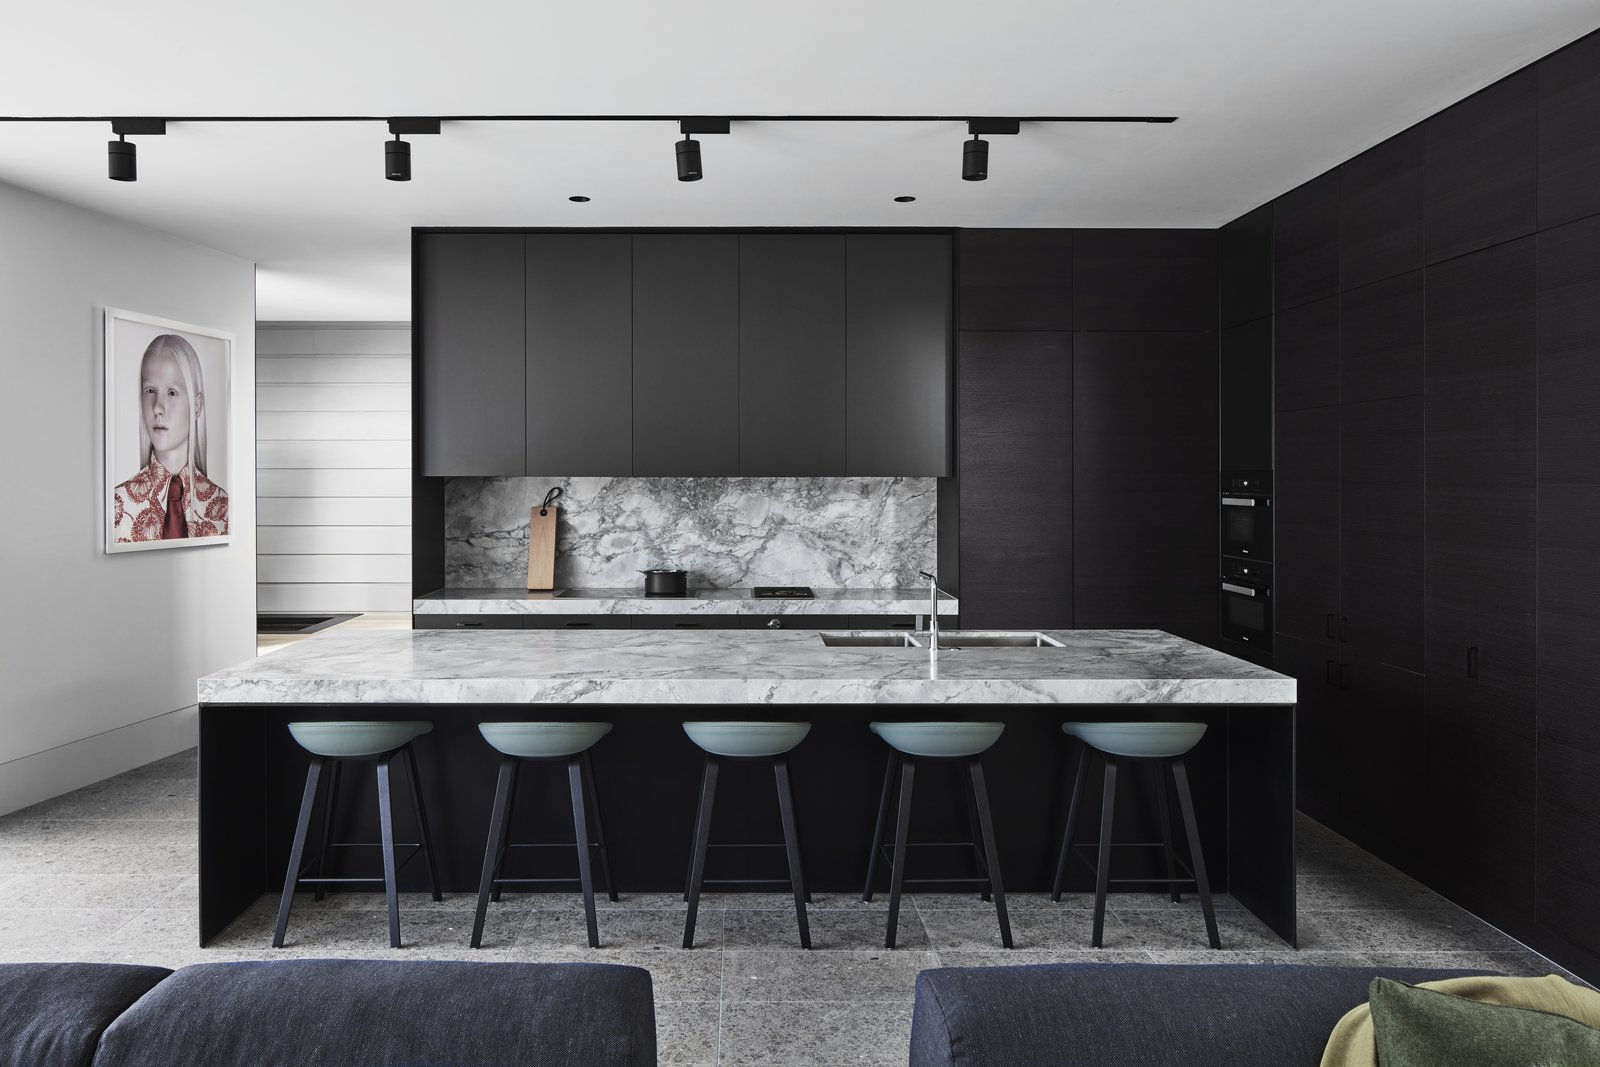 Kitchen, Marble, Wall Oven, Wood, Track, Marble, Undermount, and Cooktops B.E Architecture combines a revitalized kit home with a modern steel-and-glass extension to form a multi-generational Melbourne residence. In the kitchen, black cabinets meld seamlessly with dark countertops, furniture, and sleek track lighting.  Kitchen Cooktops Undermount Wall Oven Marble Wood Photos from An Old Kit Home Is Transformed Into a Multi-Generational Abode